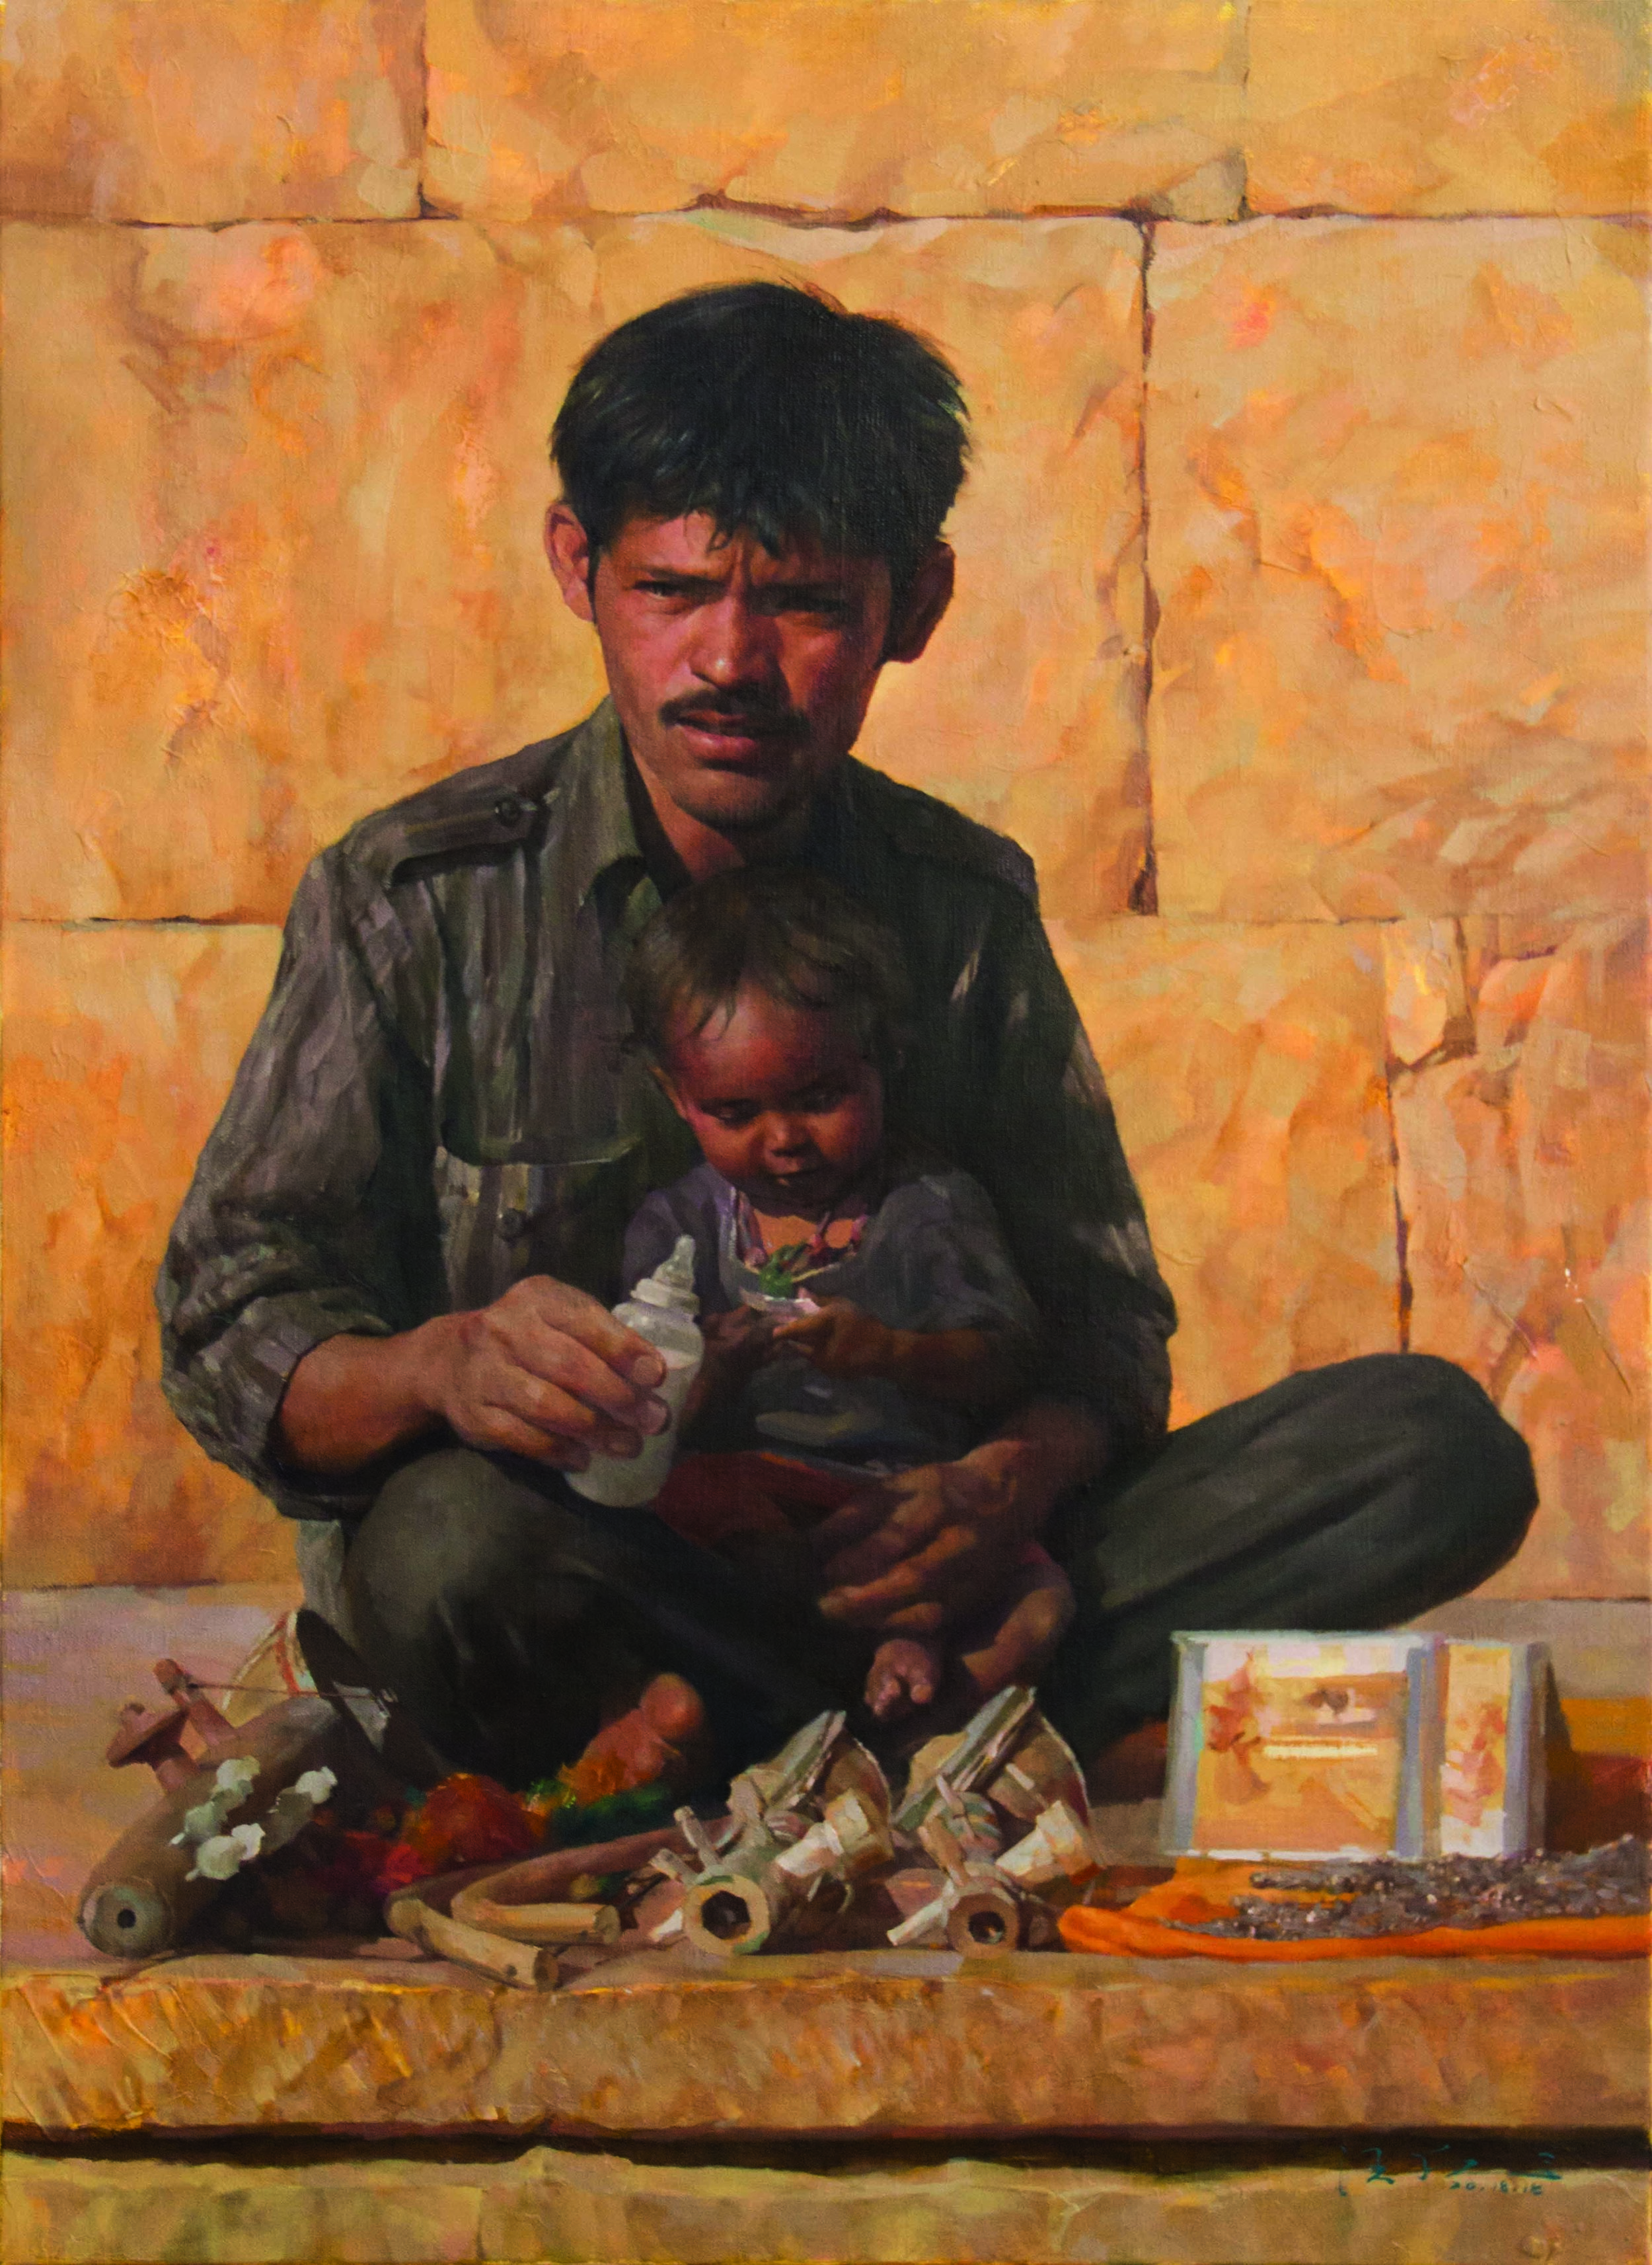 Wang Fei_In the Arms_oil on canvas_84x59cm_2018_IMG_7329_web.jpg